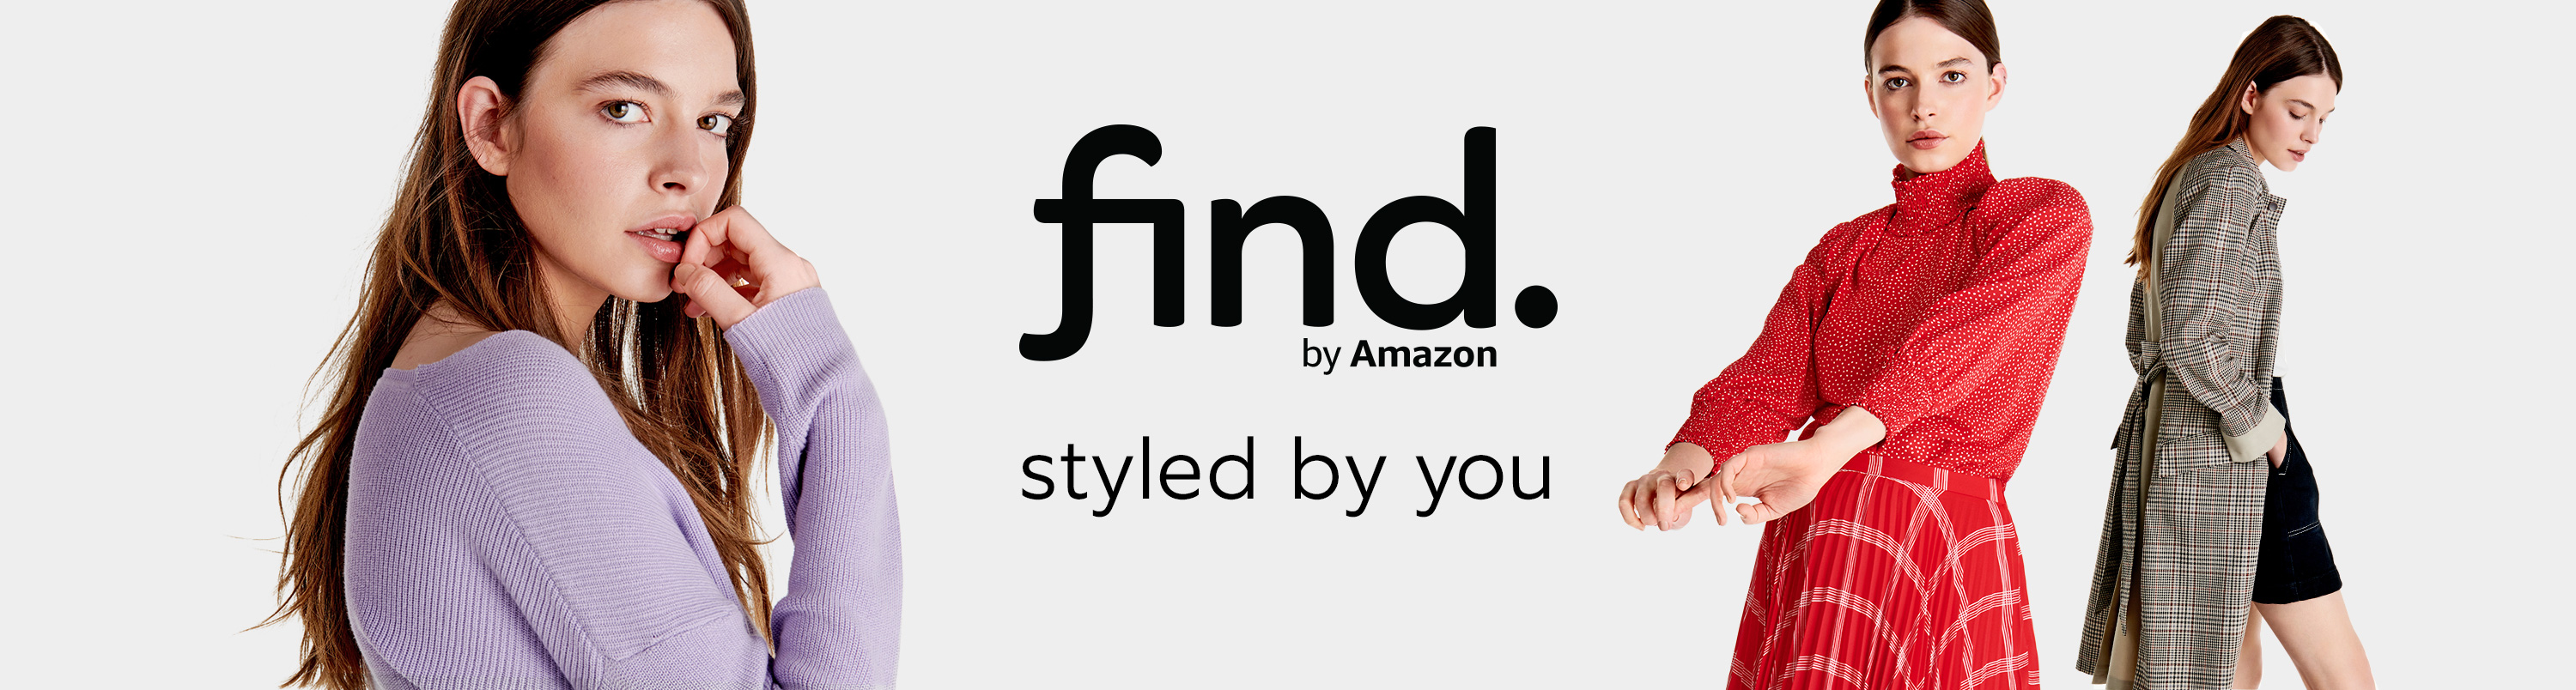 find. Styled by You